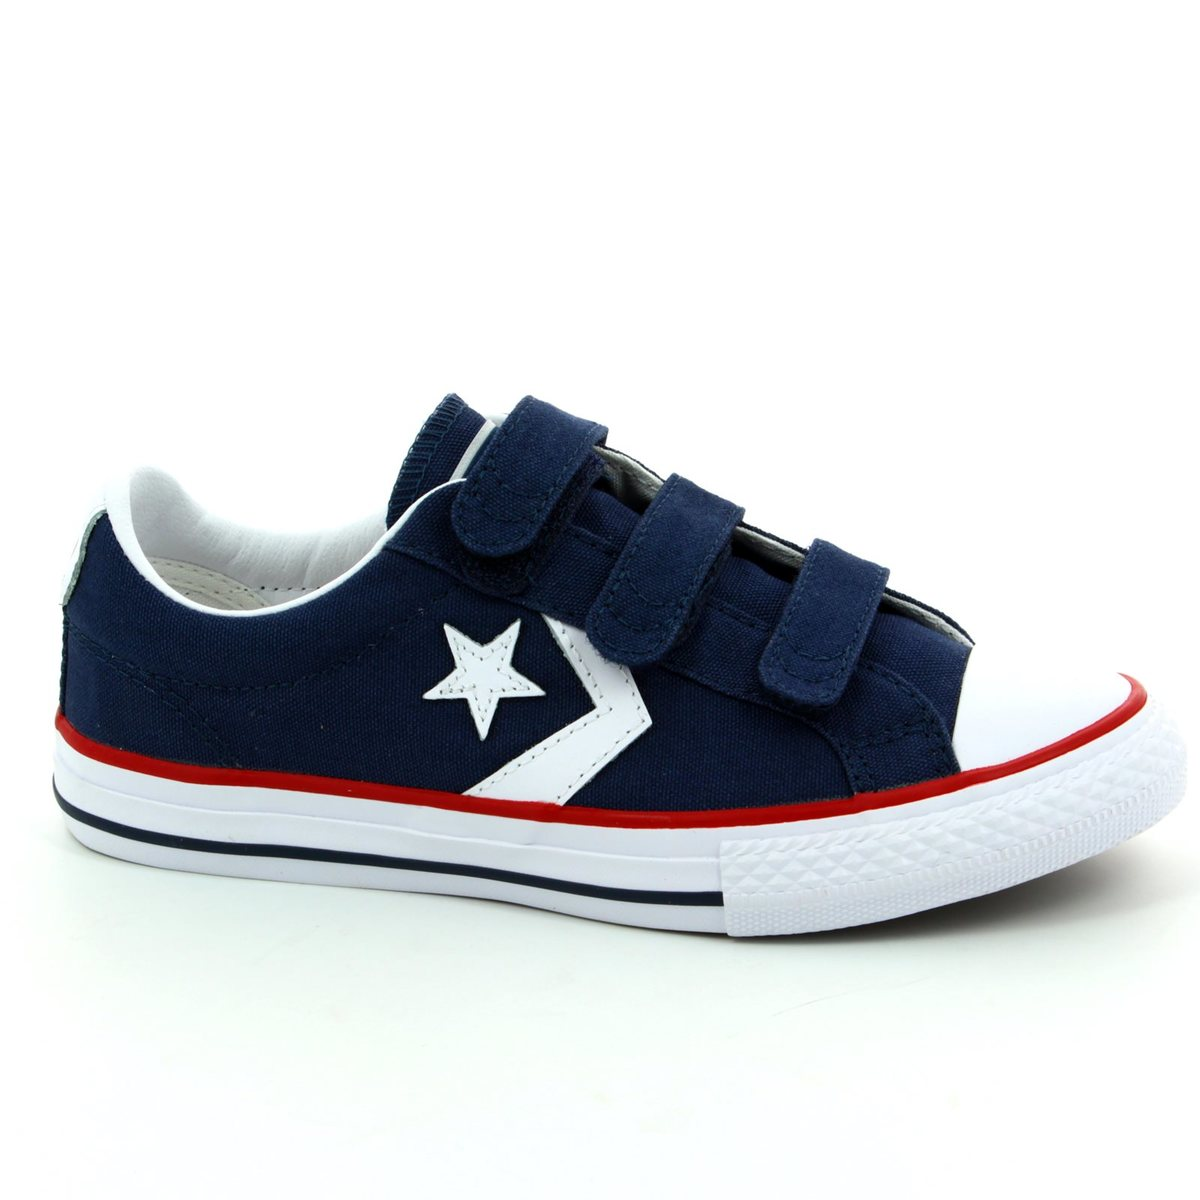 315467412 Star Player 3v Ox Velcro at Begg Shoes & Bags